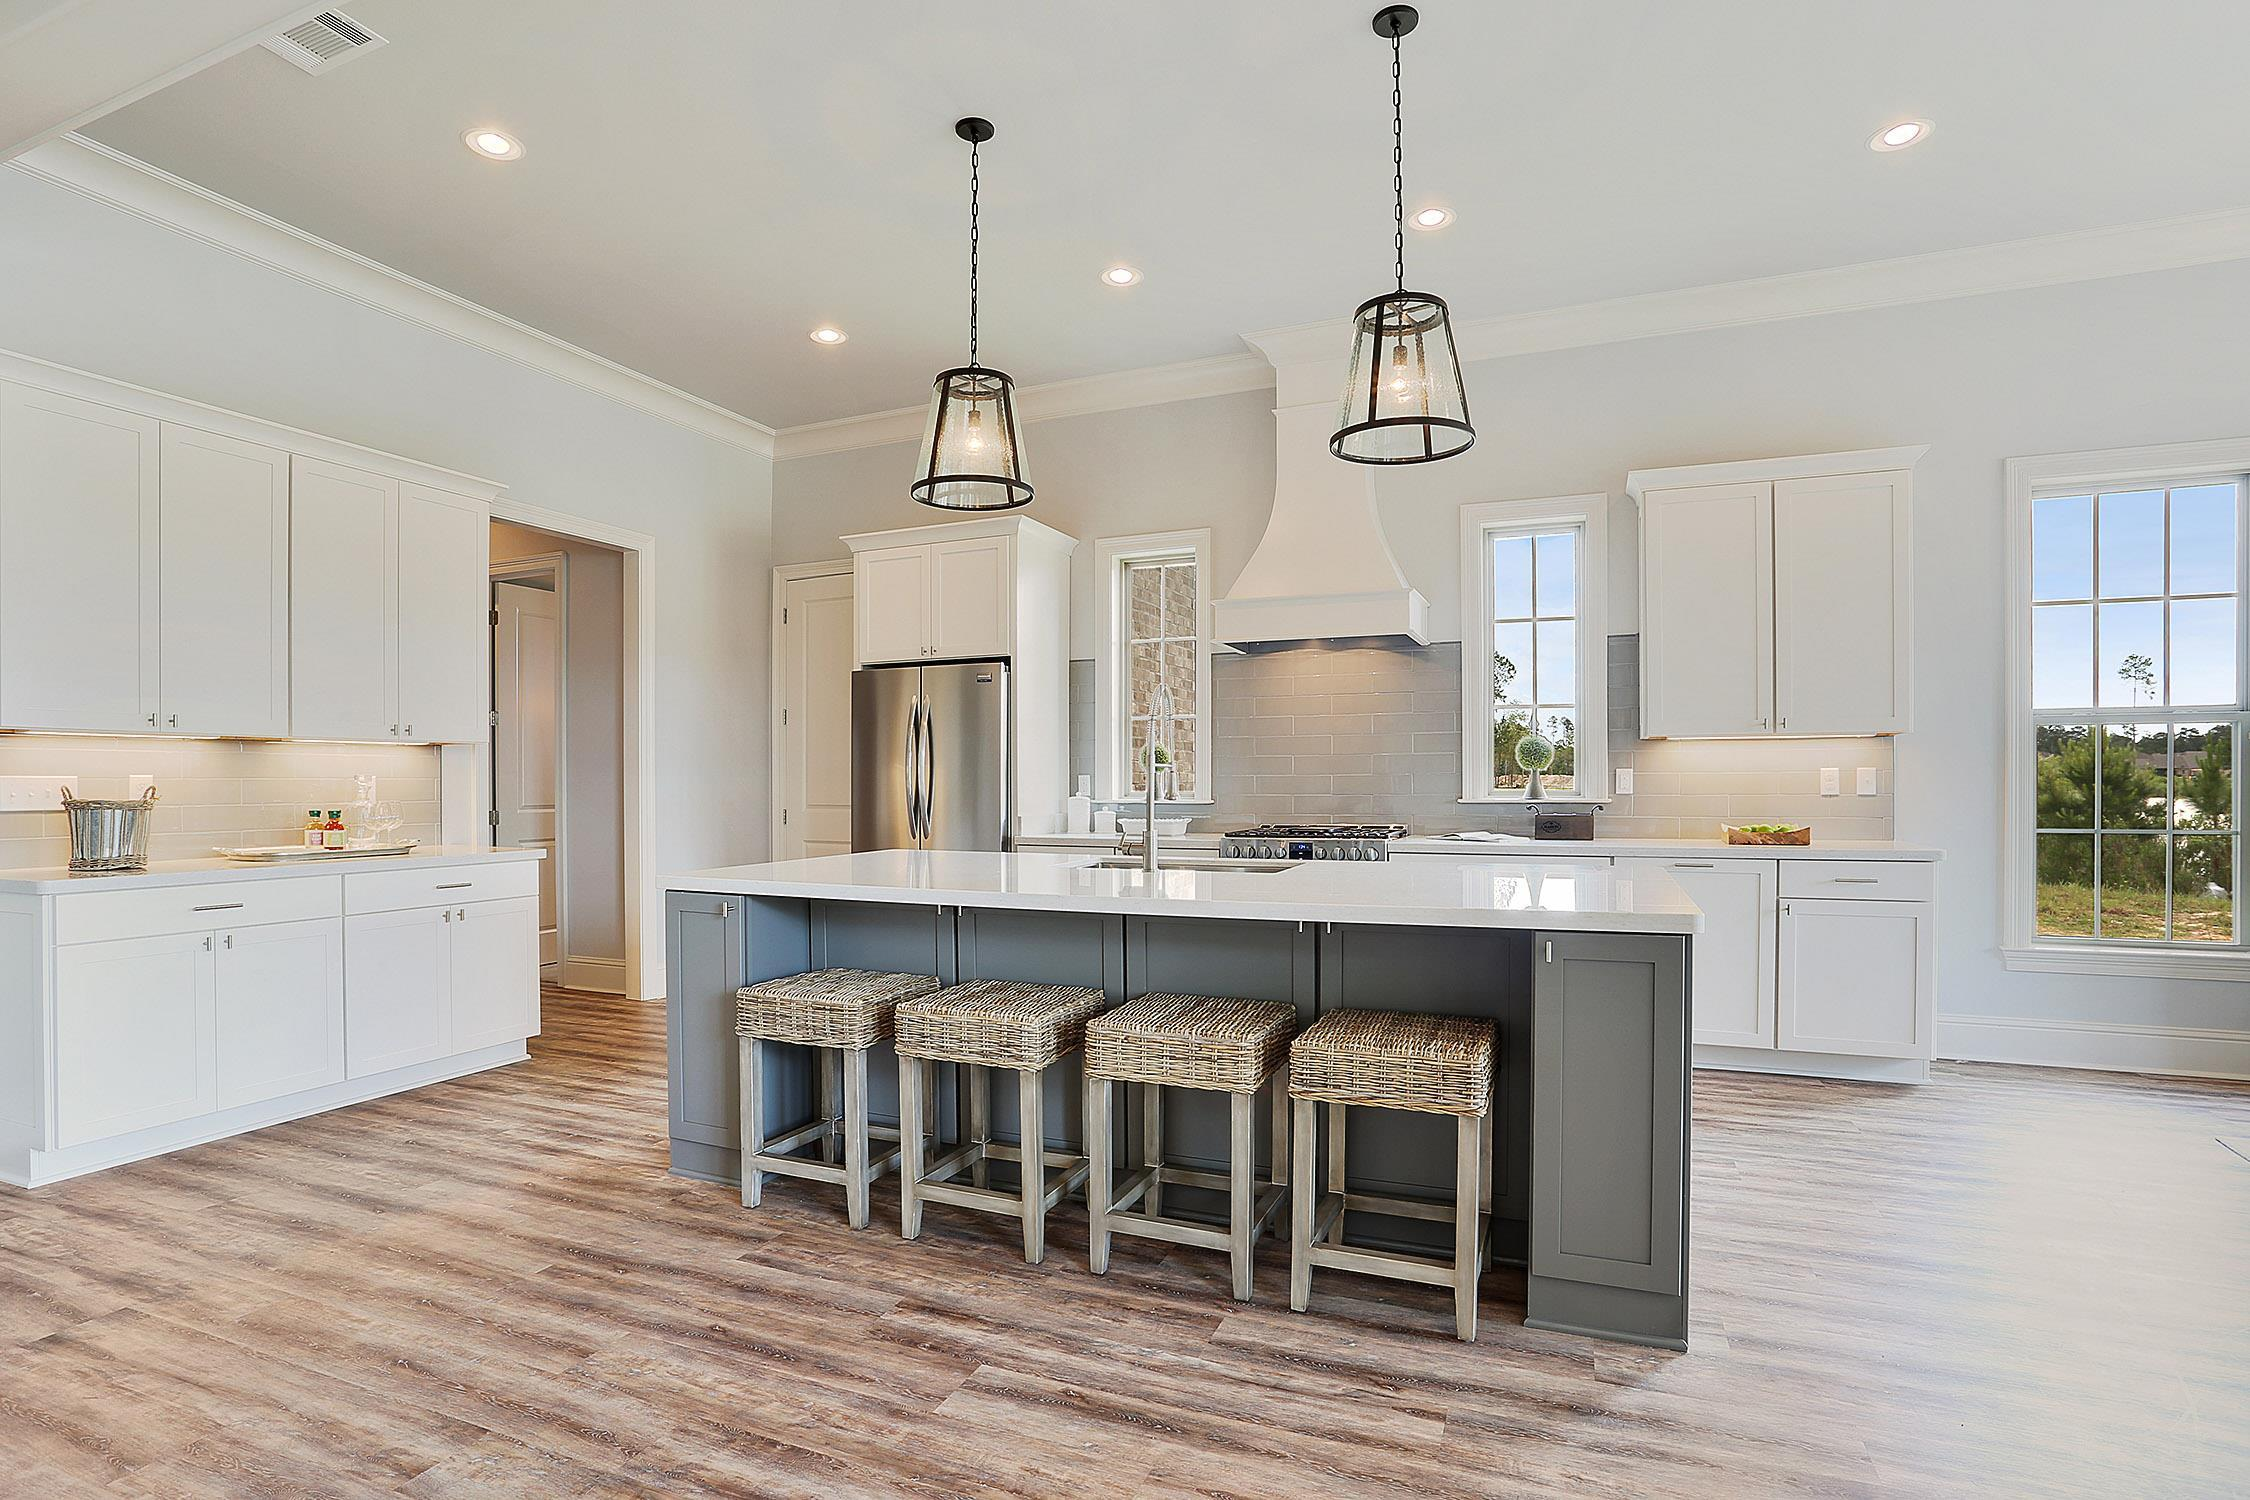 Kitchen featured in the Julianne By Highland Homes in New Orleans, LA